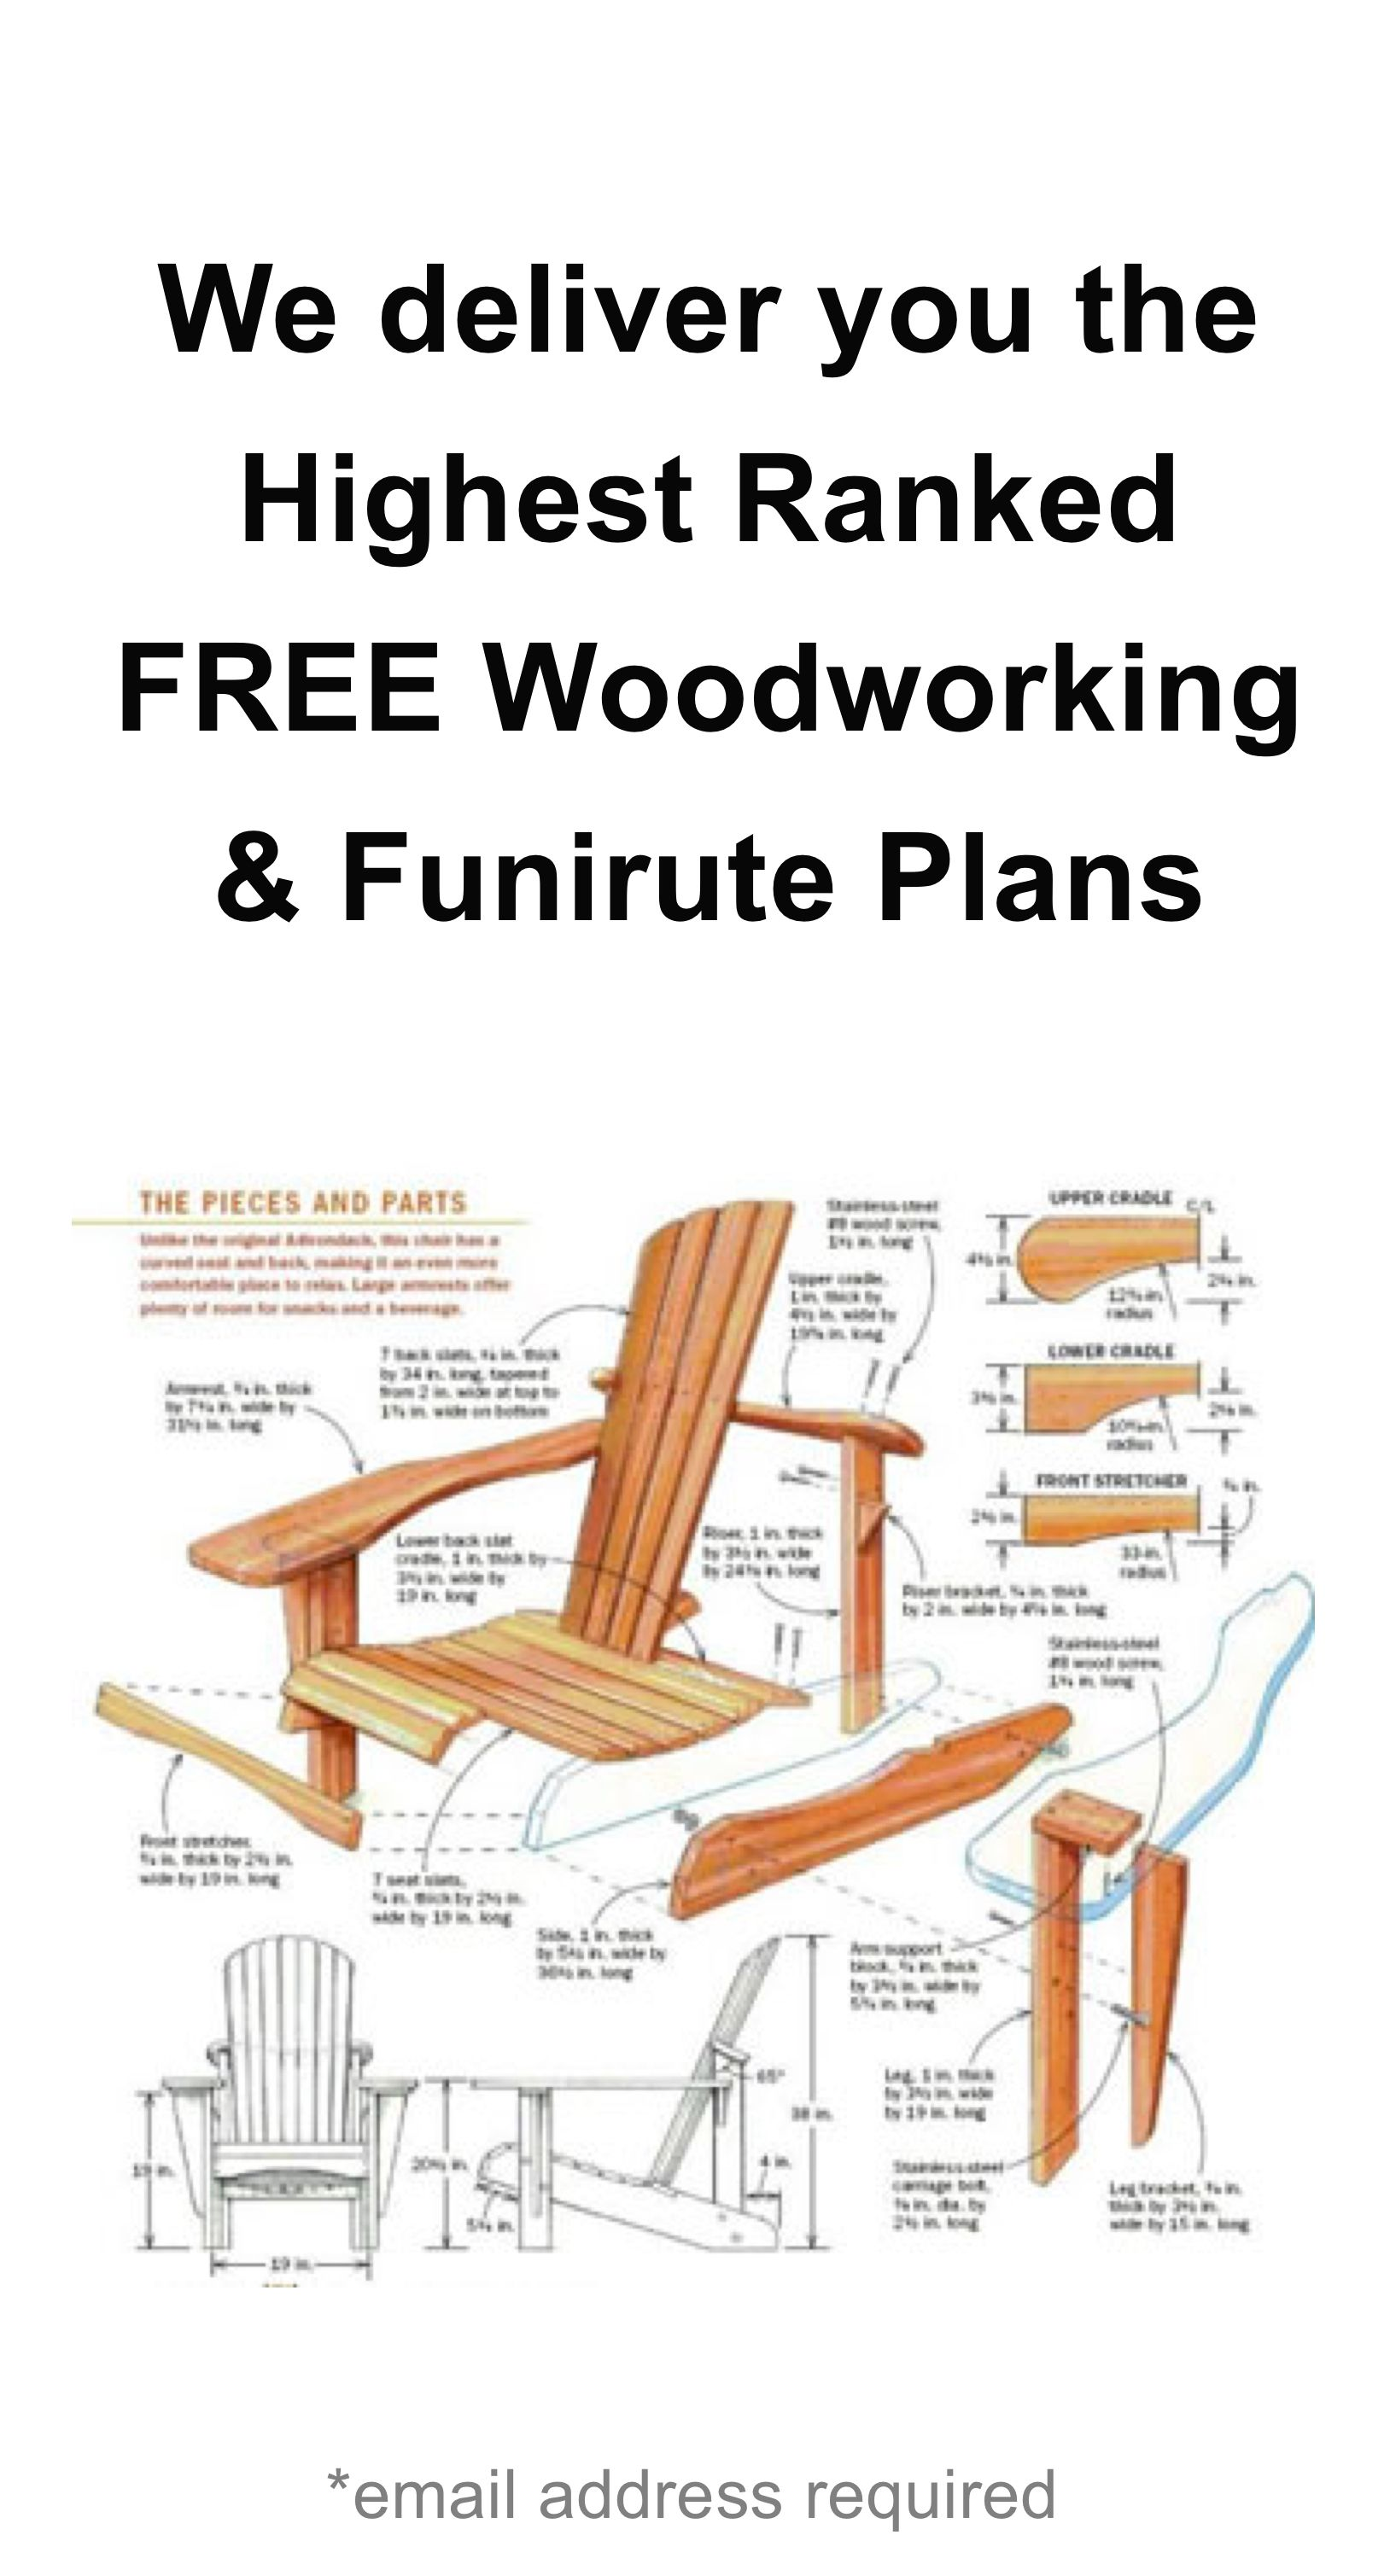 Free Woodworking Plans Delivered to you